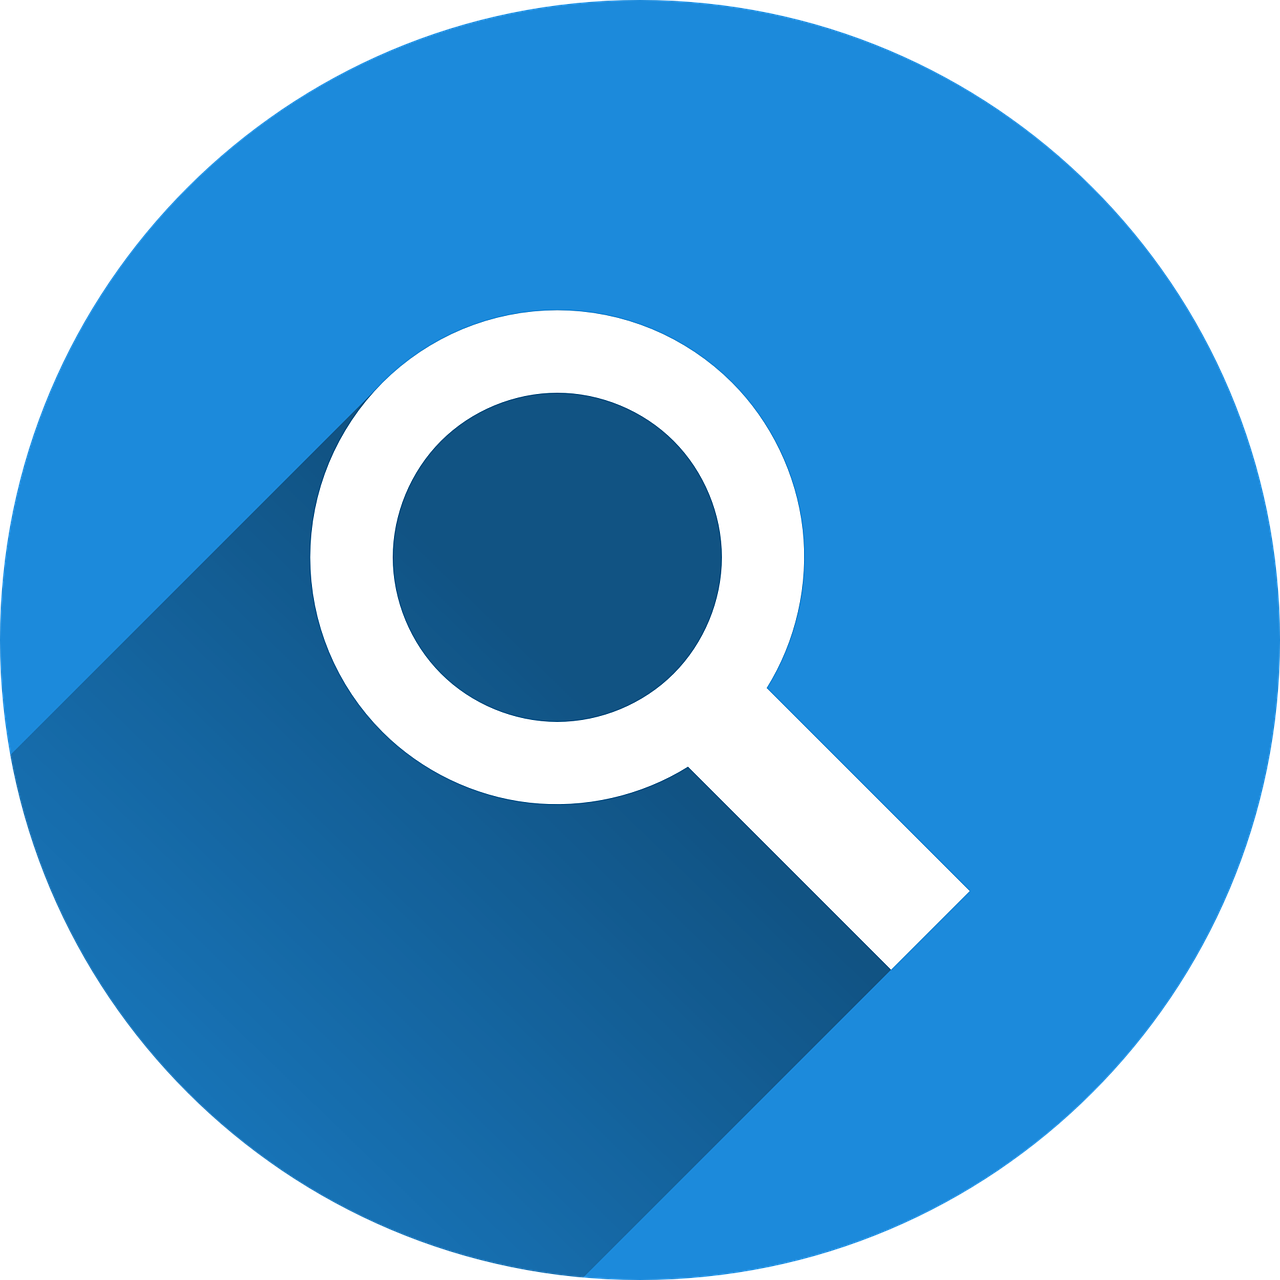 A magnifying glass to represent the eligibility tools